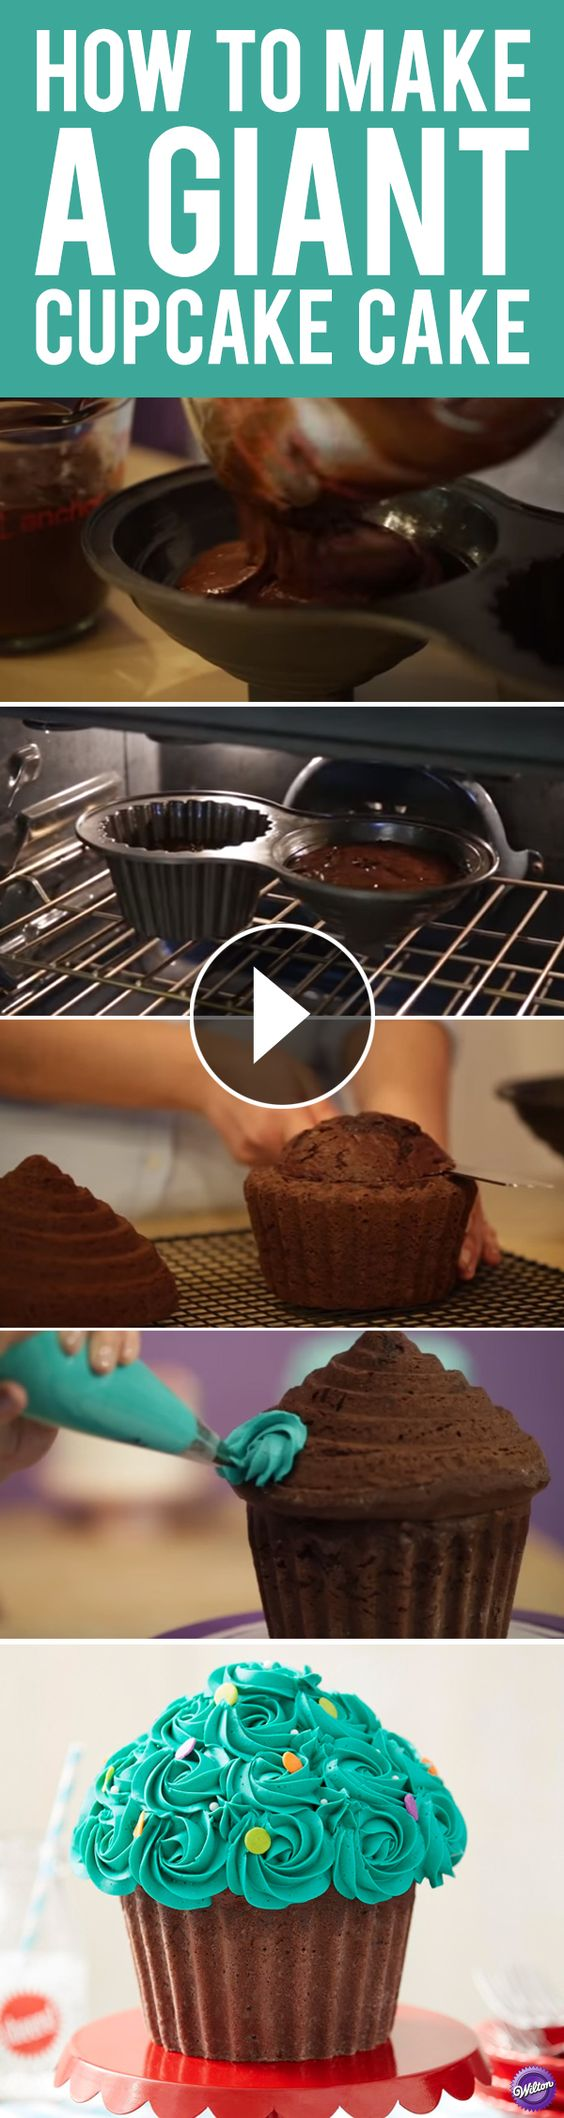 Cupcakes 101: 10 Tips to Bake the Perfect Cupcake